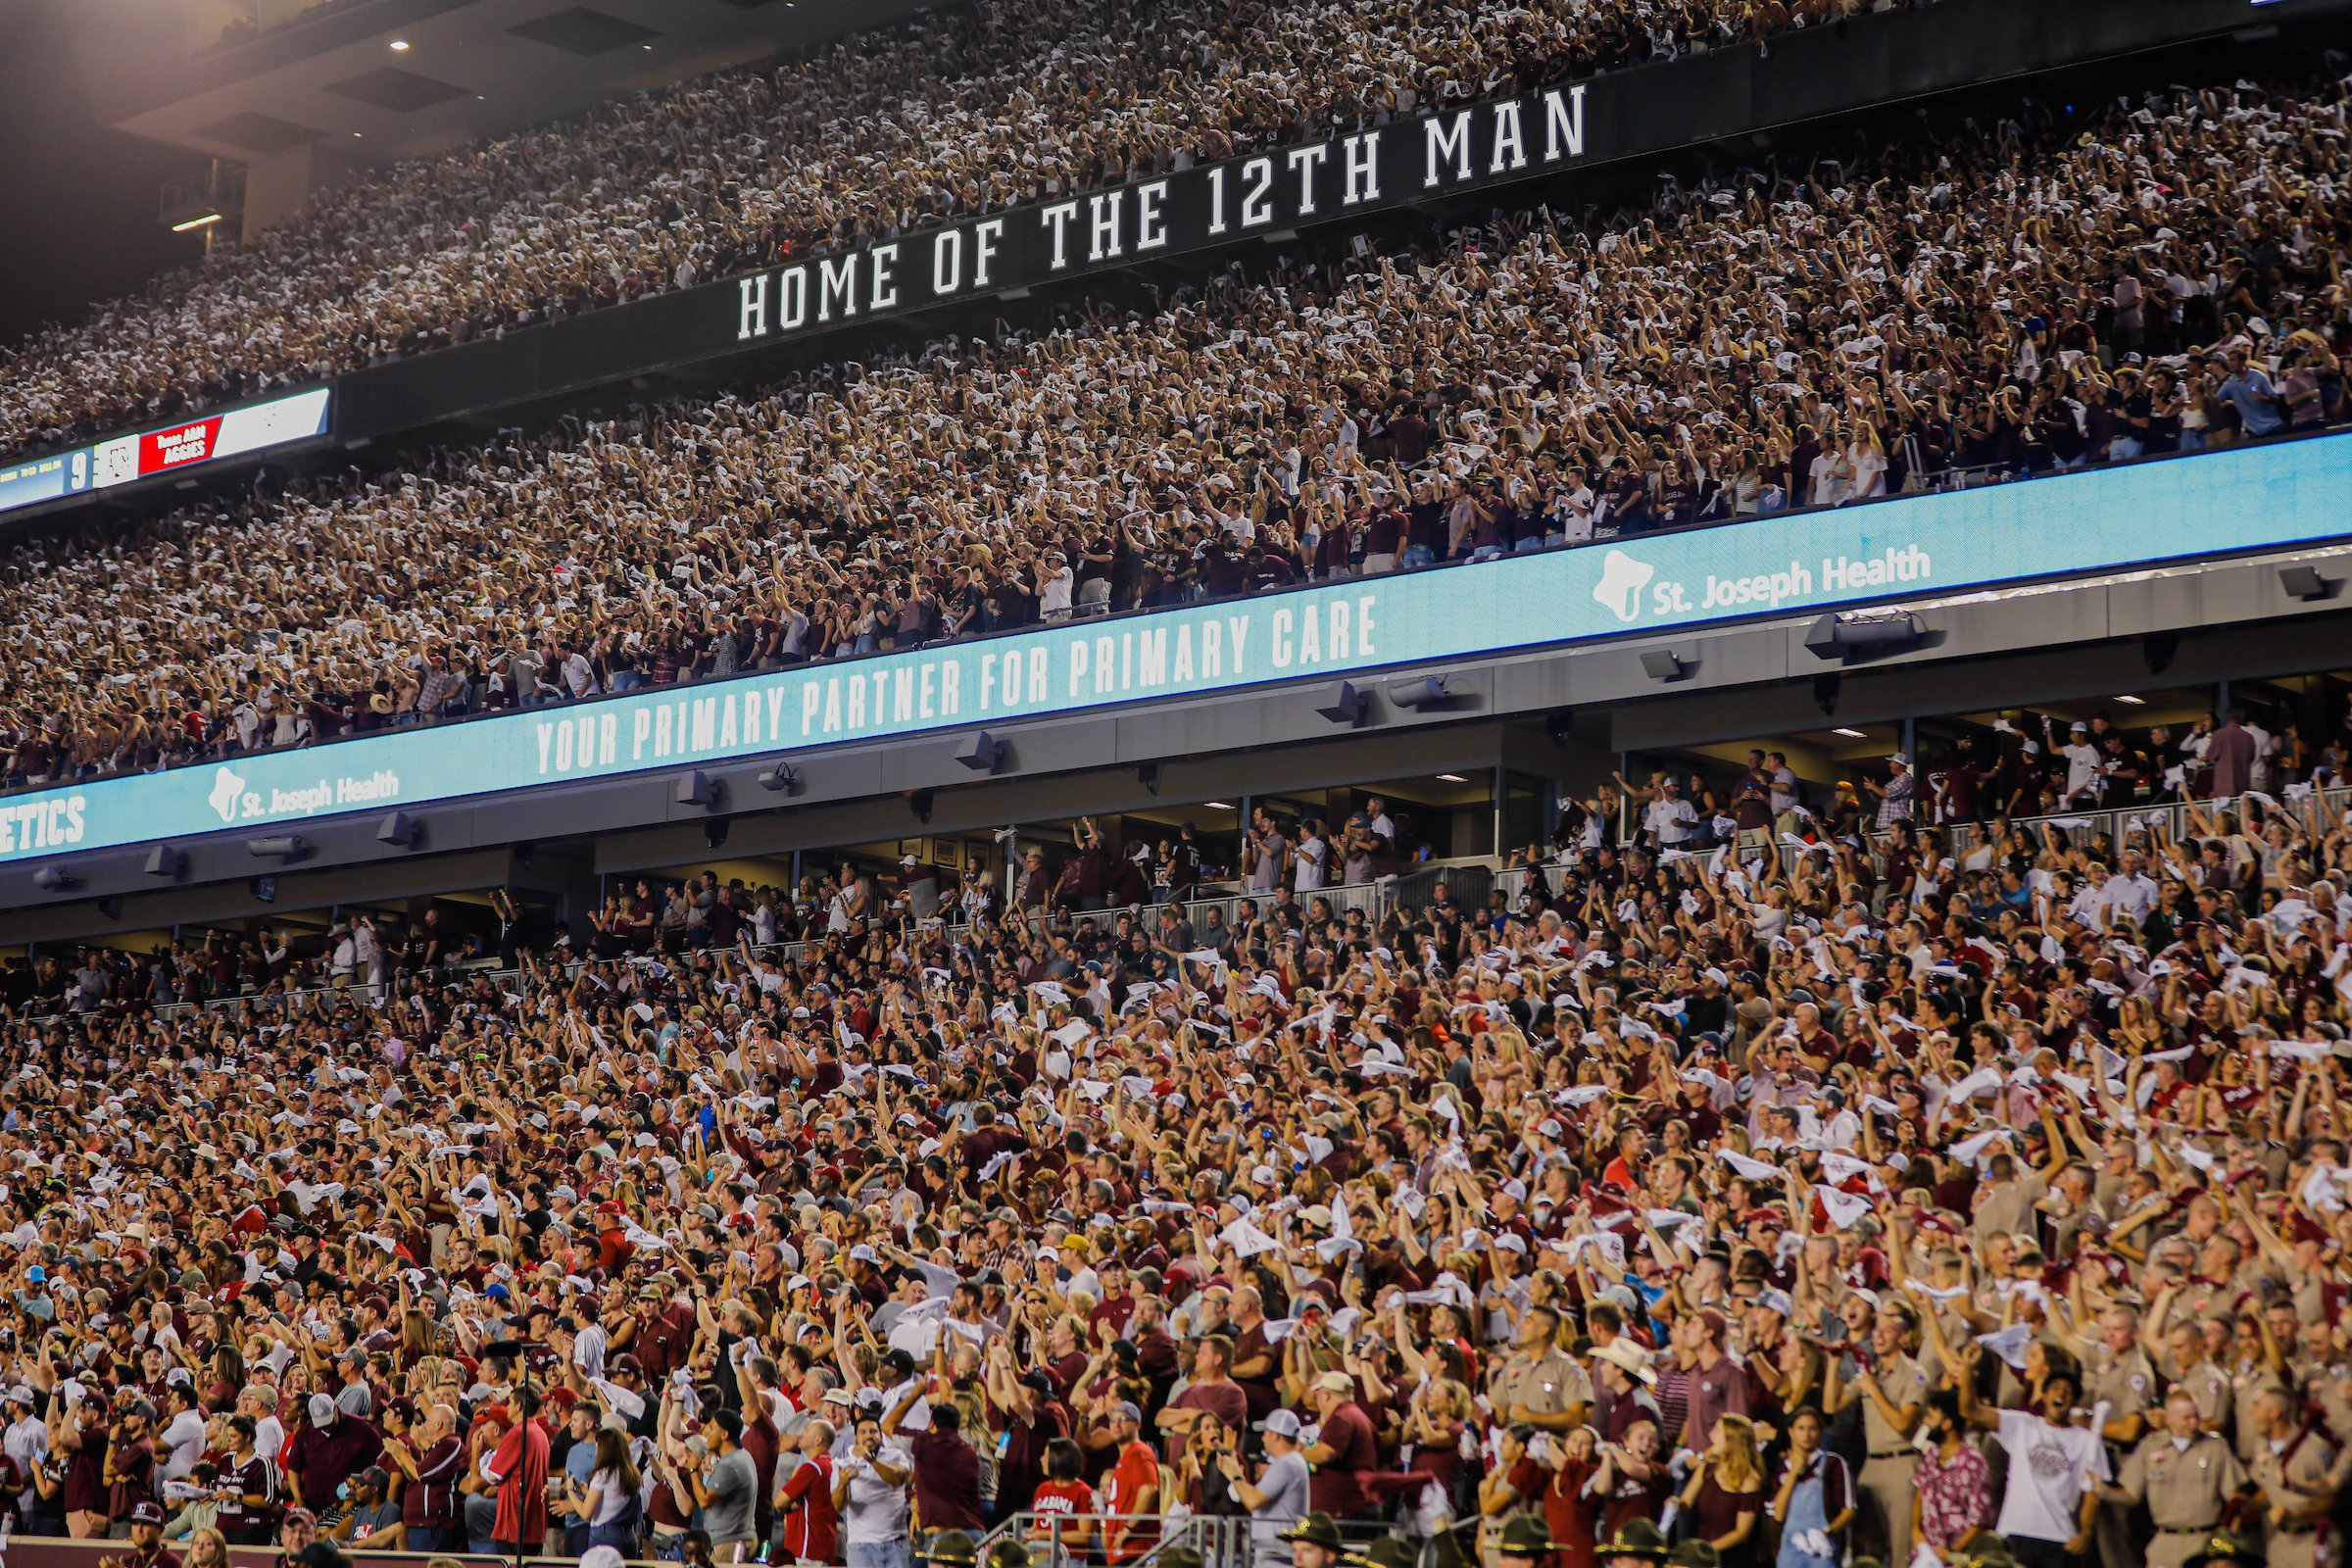 the student section in kyle field with home of 12th man sign